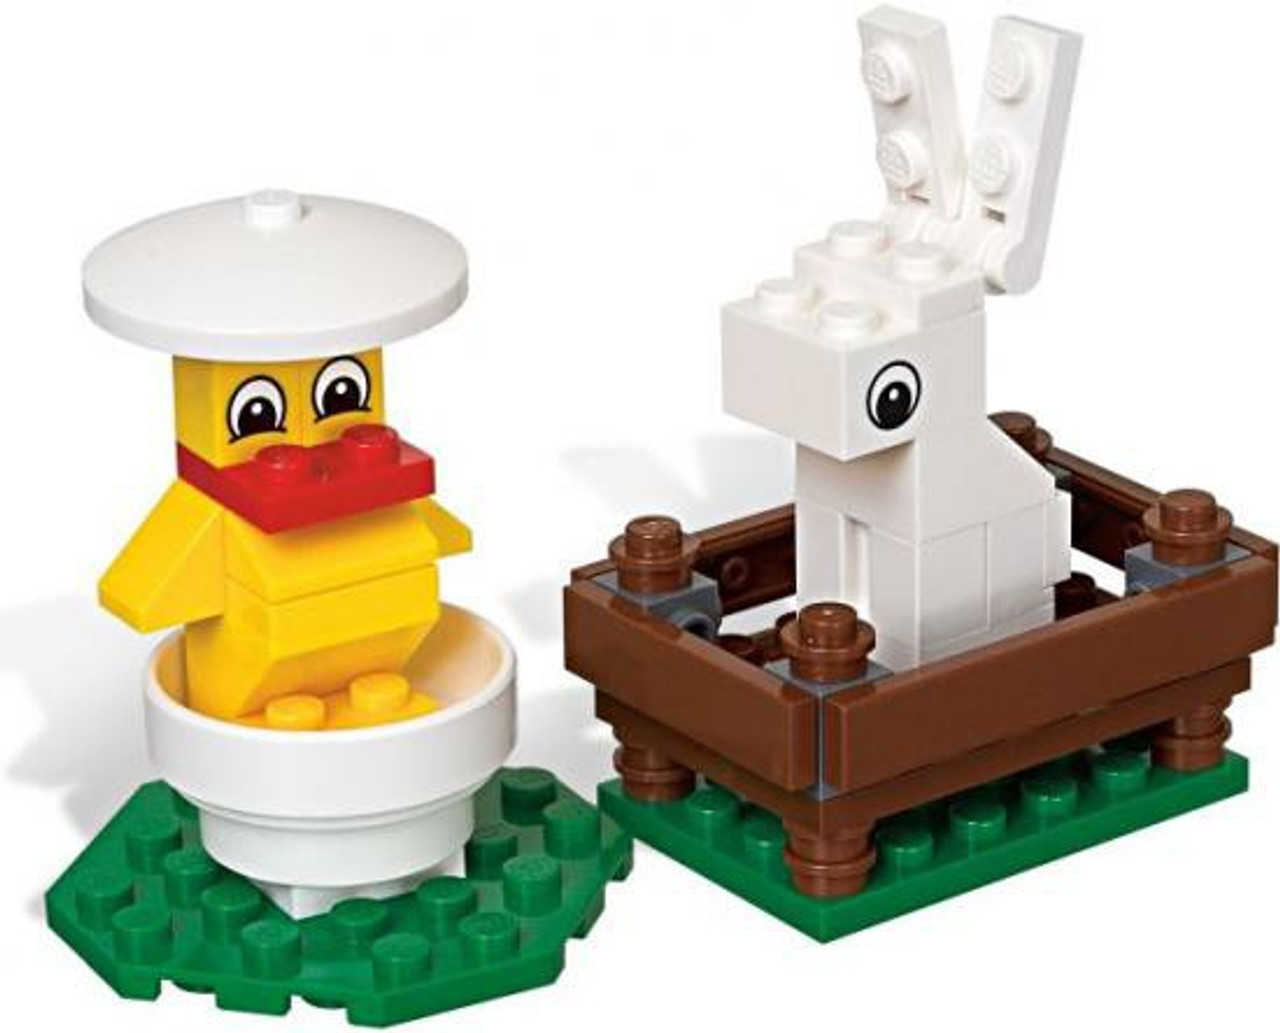 LEGO Bunny & Chicks Mini Set #40031 [Bagged]